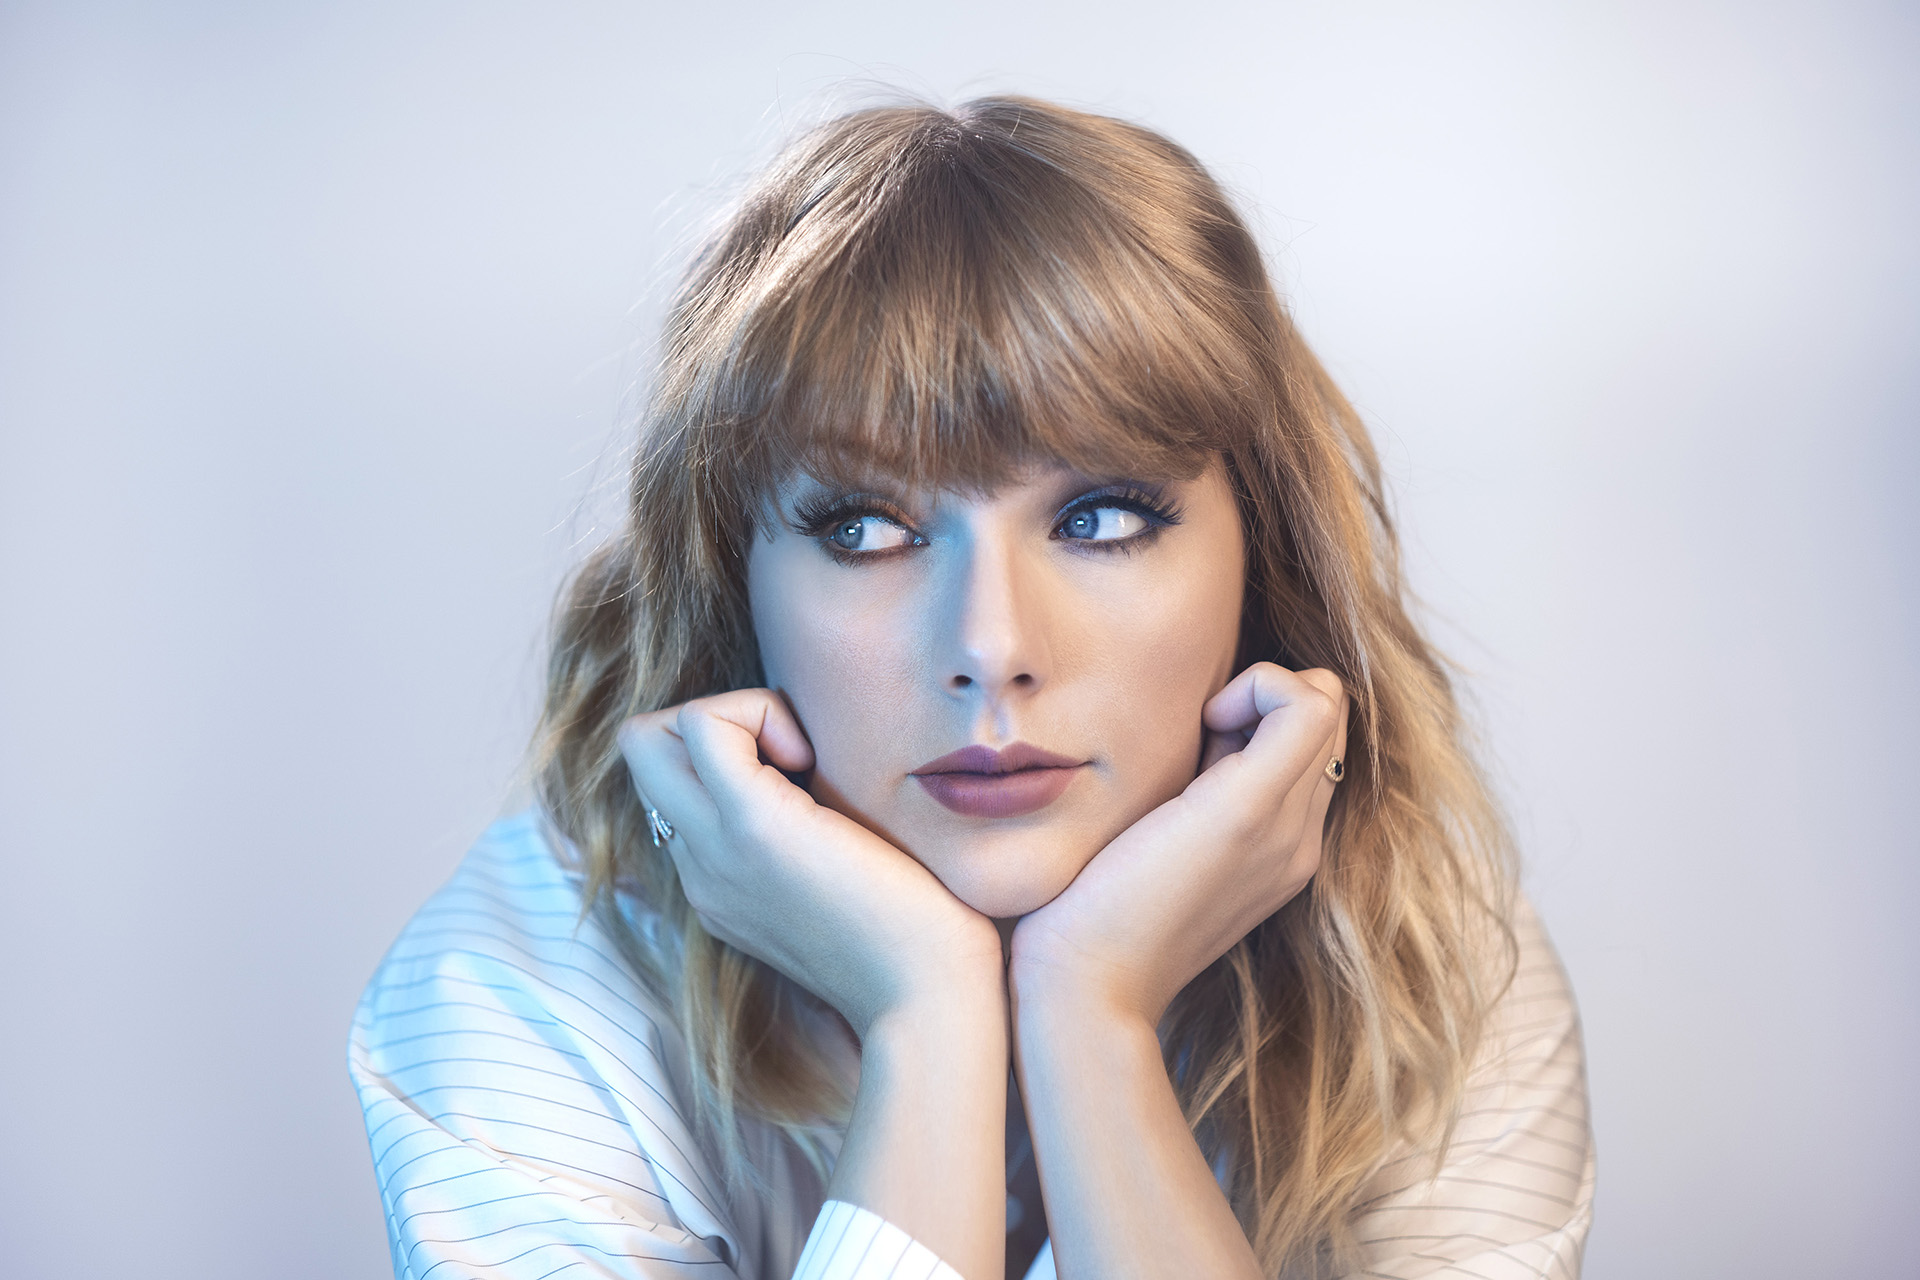 Wallpaper Taylor Swift with her hands on her chin